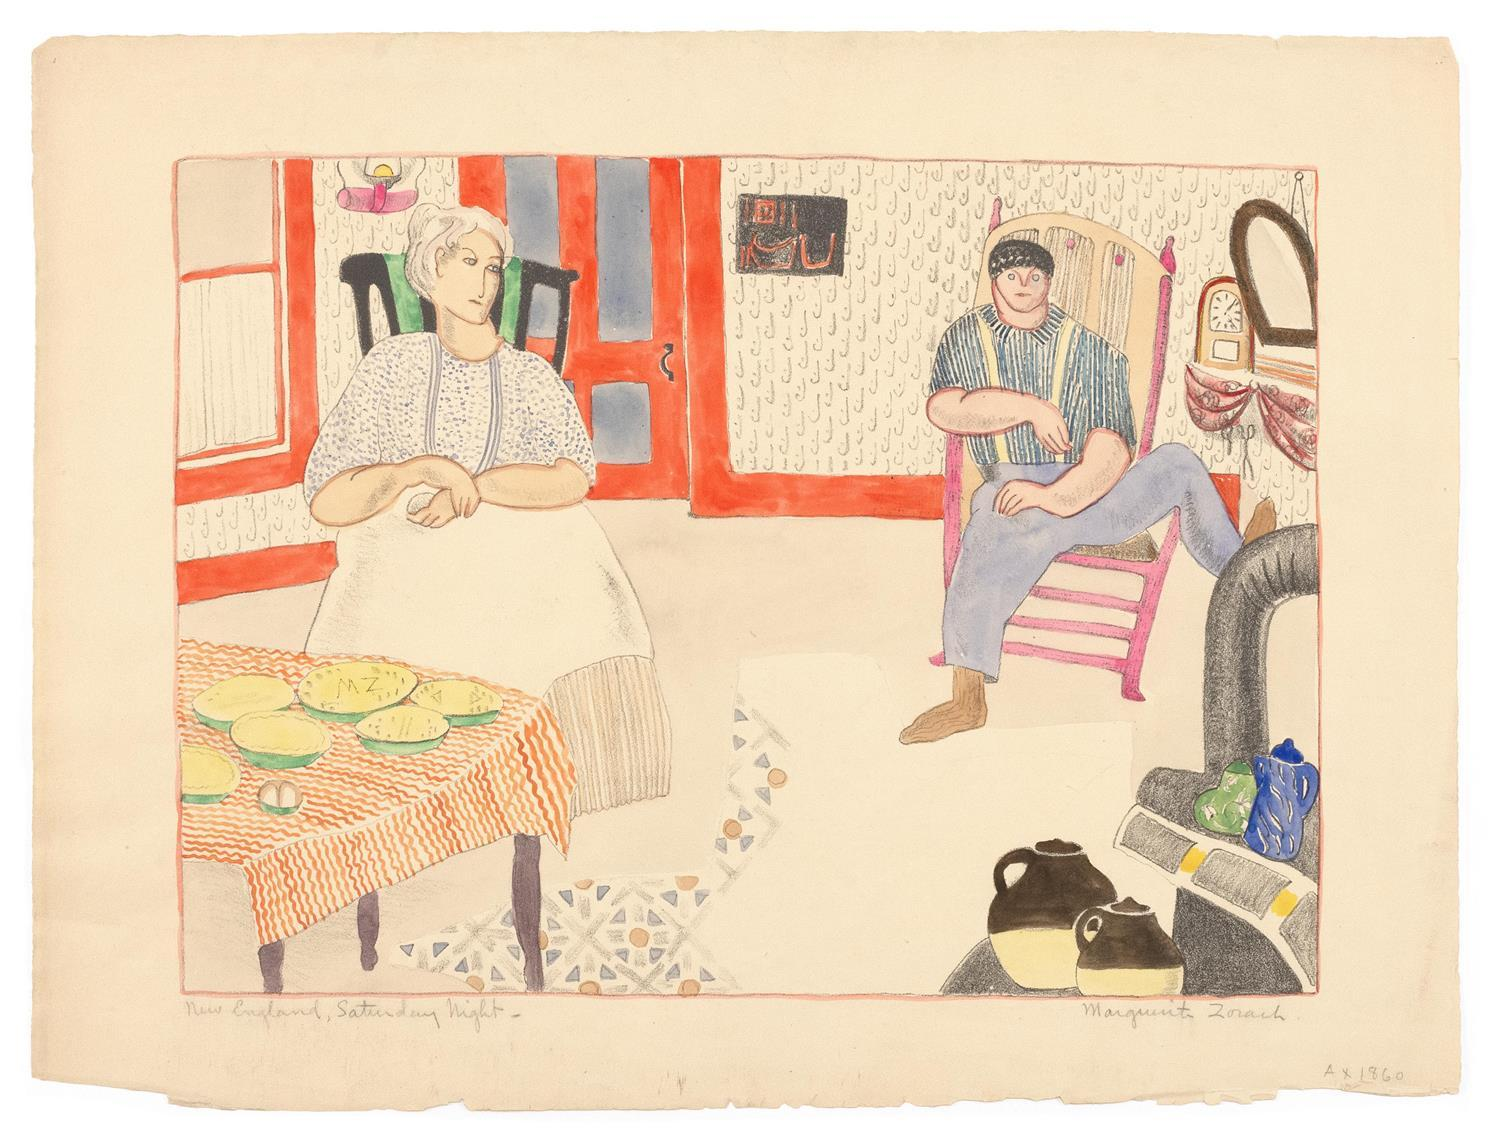 """MARGUERITE THOMPSON ZORACH, New York/Maine/California, 1887-1968, """"New England, Saturday Night""""., Lithograph with watercolor and pen..."""